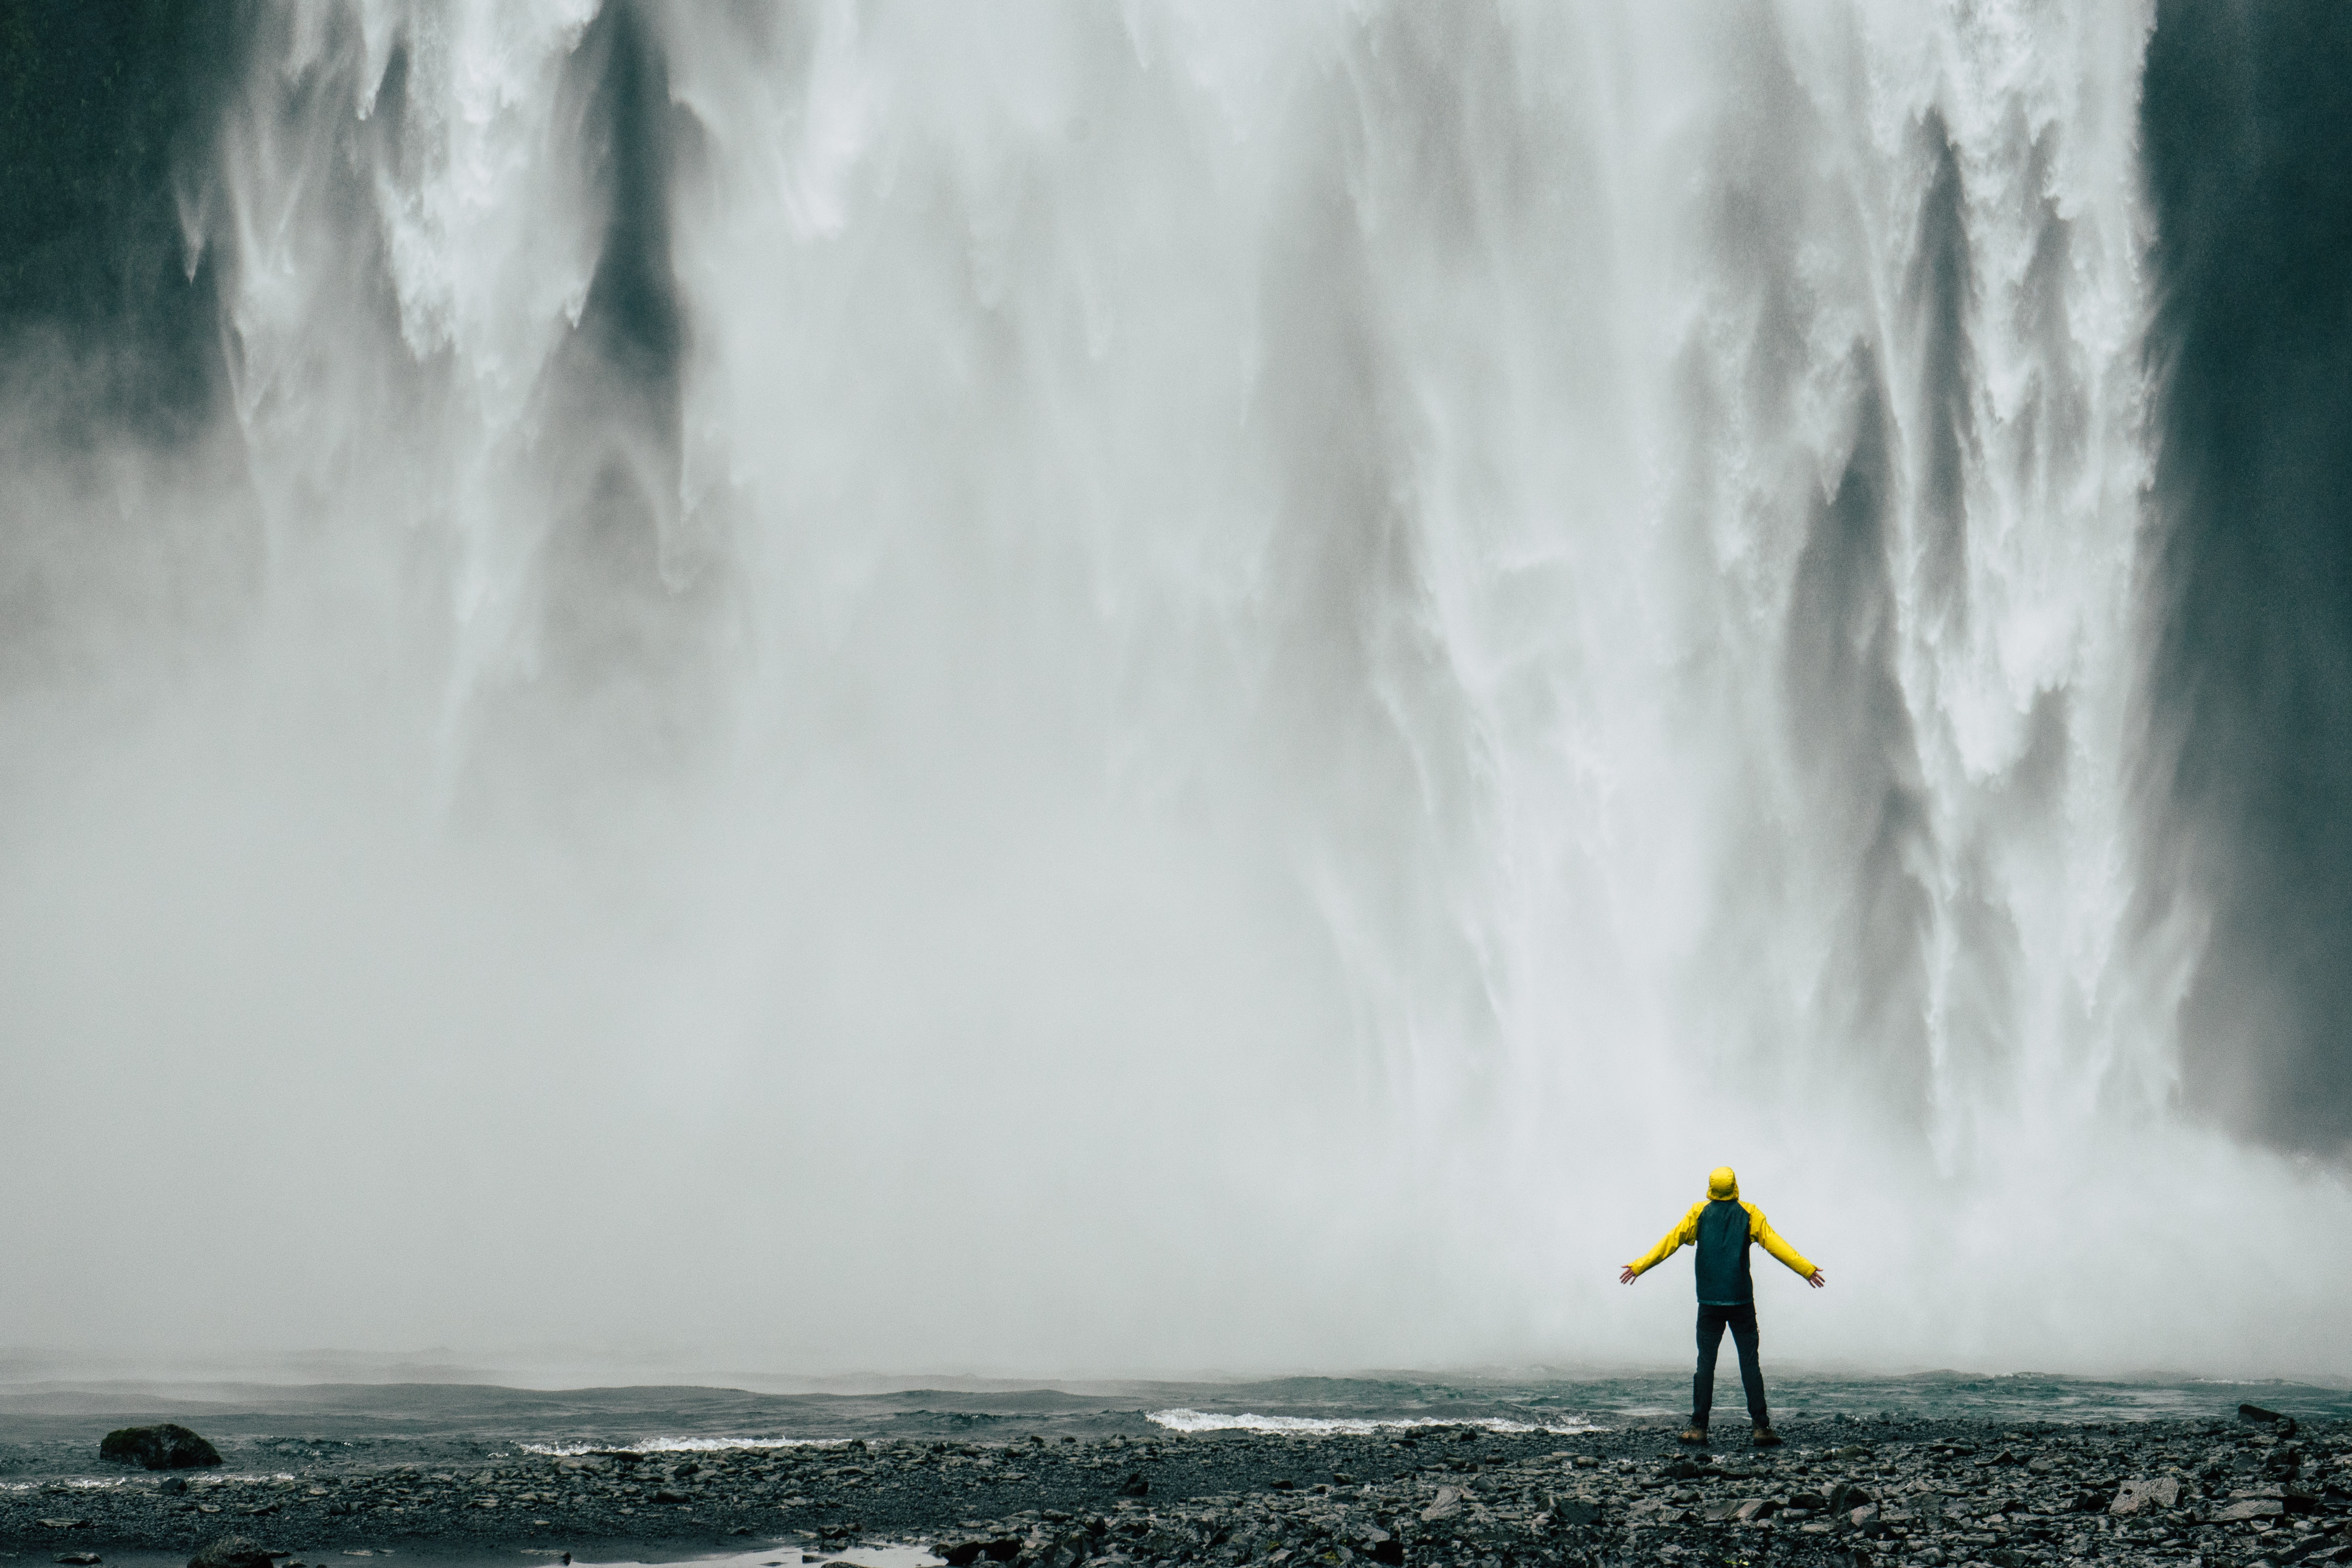 man standing in front of waterfalls at daytime